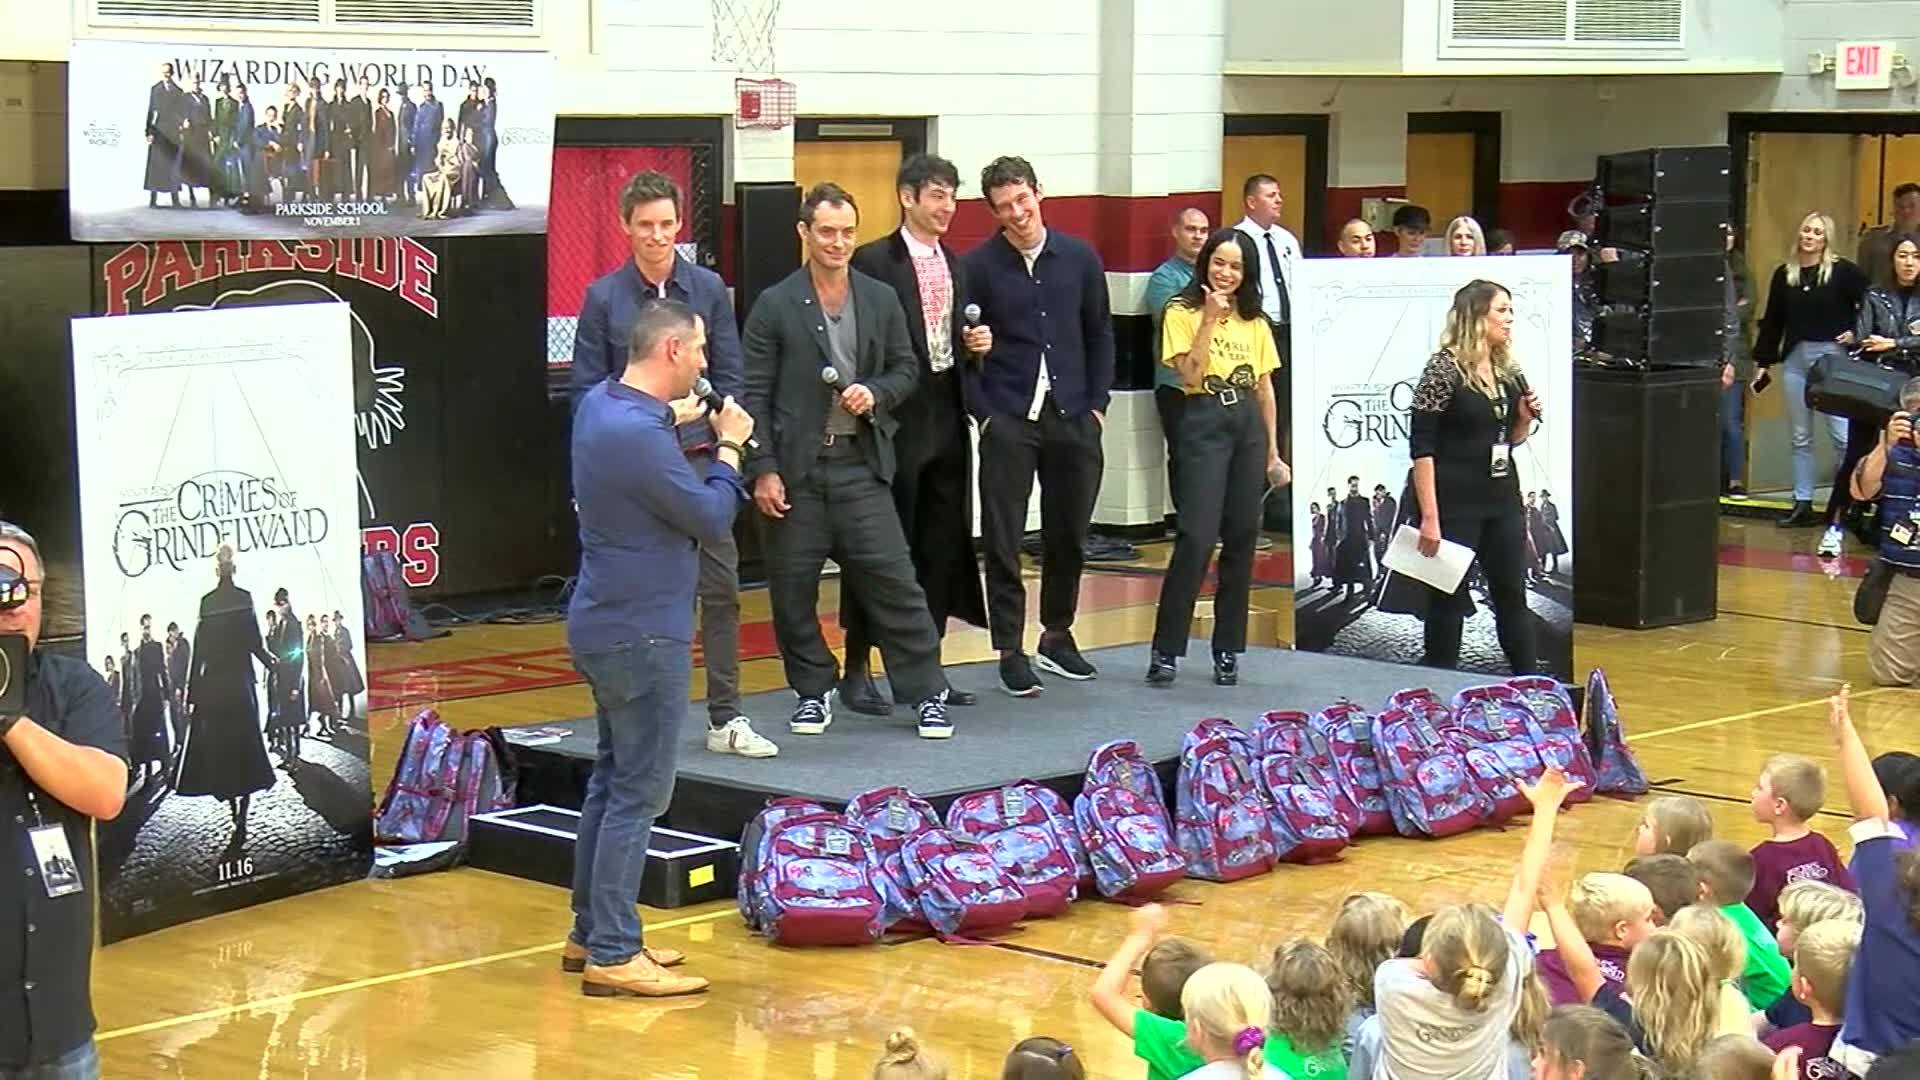 Fantastic Beasts cast visits Alabama school